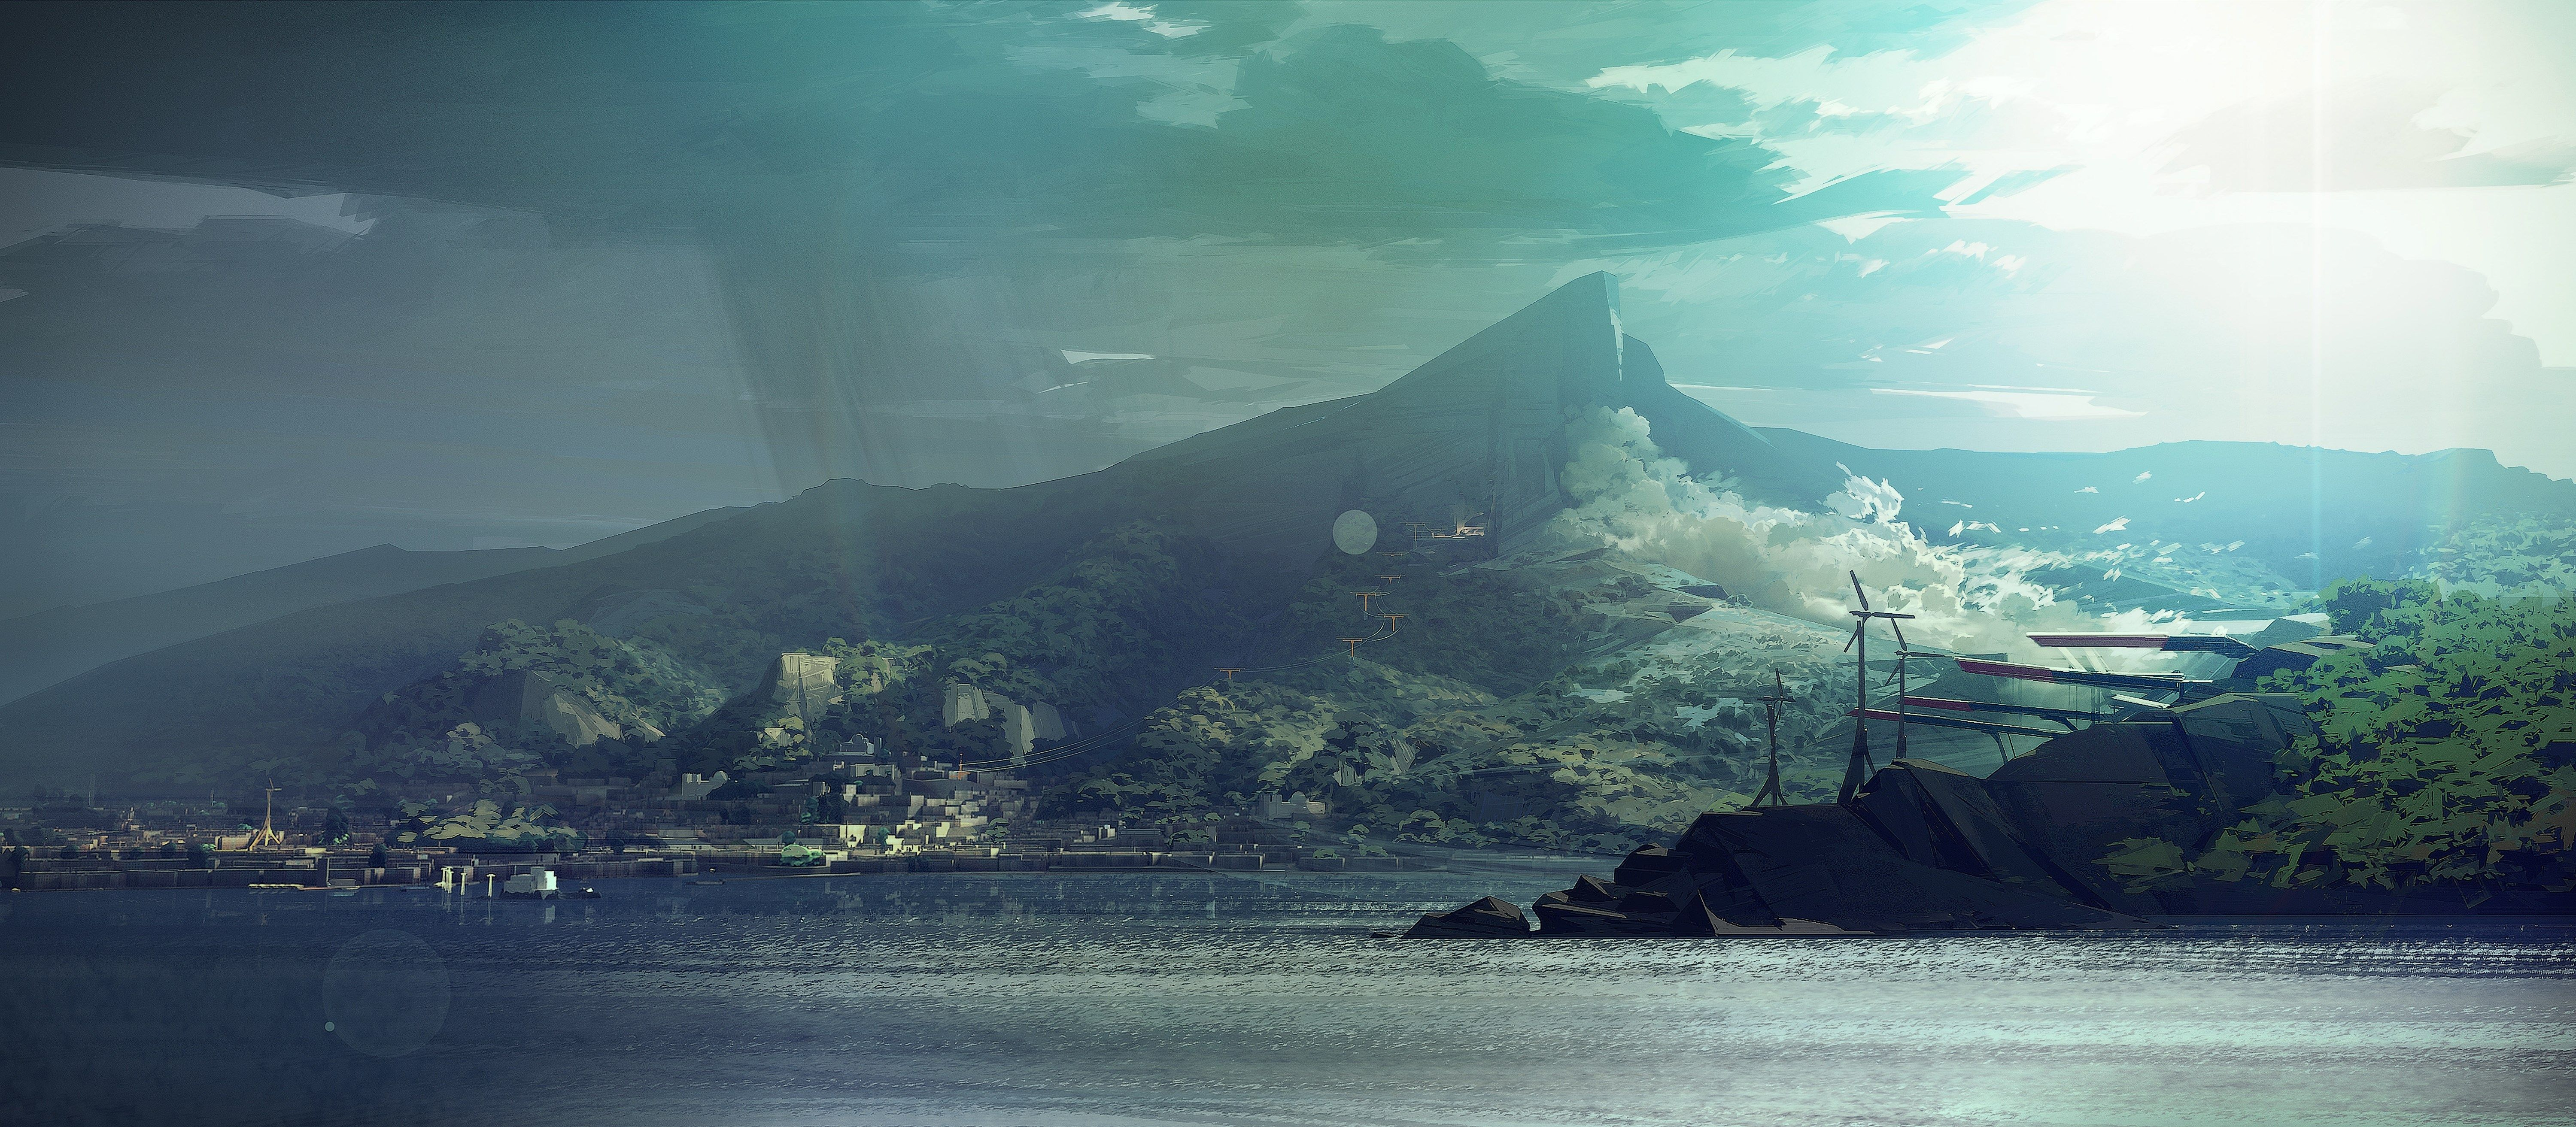 Dishonored 2 Wallpapers 1080p High Quality 6000x2626 3556 Kb Dishonored 2 Dishonored Environment Design